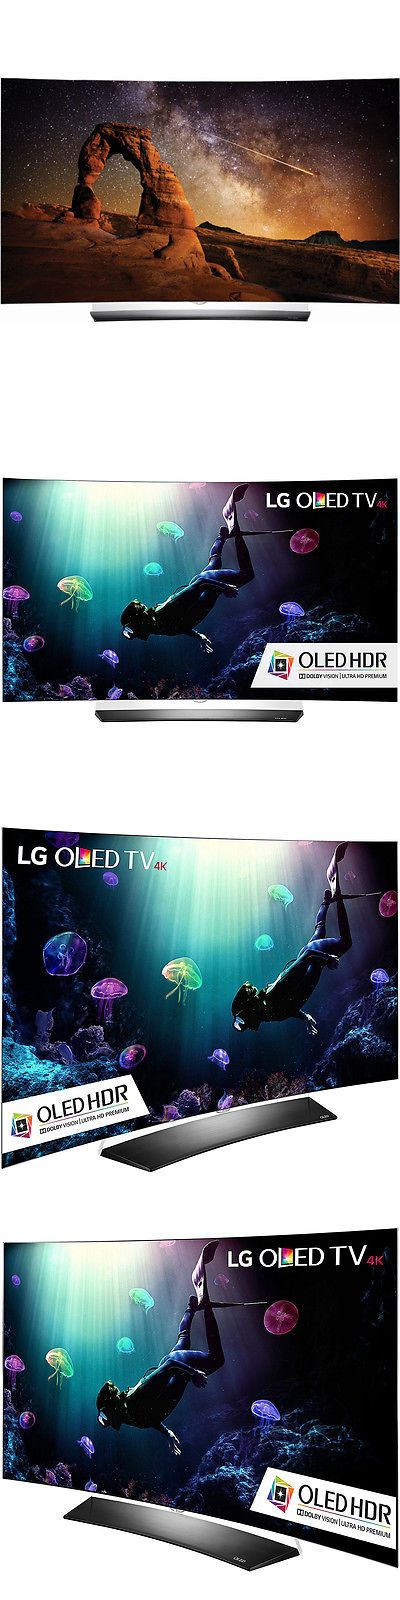 electronics: Lg Oled55c6p 55-Inch 4K Uhd Hdr Smart 3D Oled Tv Open Box 1 Year Warranty -> BUY IT NOW ONLY: $1349 on eBay!